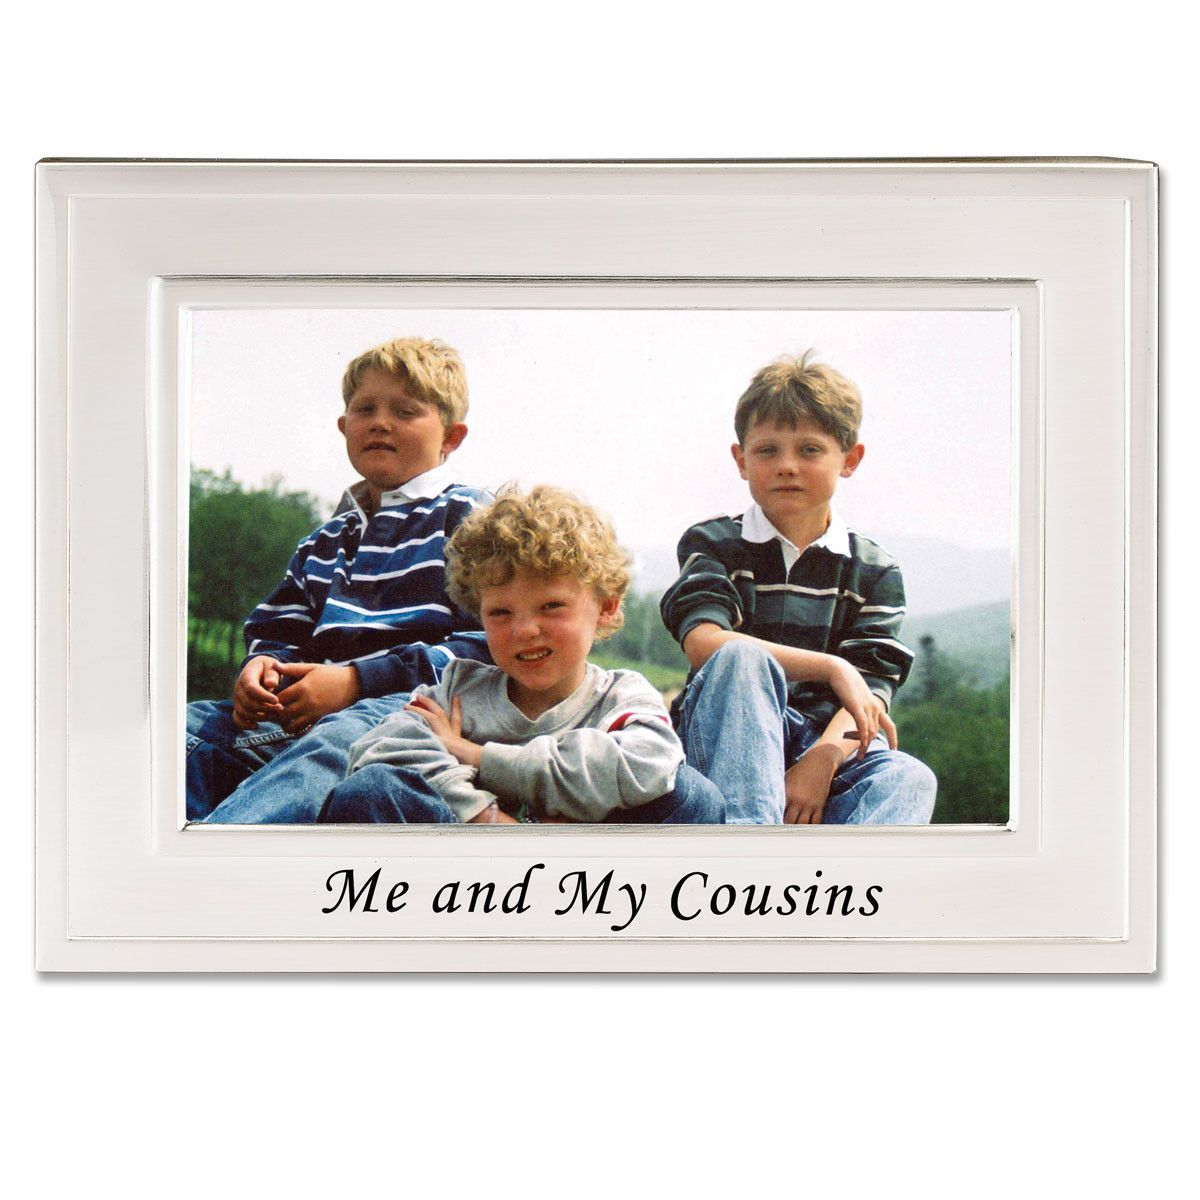 Me and my cousins picture frame products pinterest products me and my cousins picture frame jeuxipadfo Choice Image